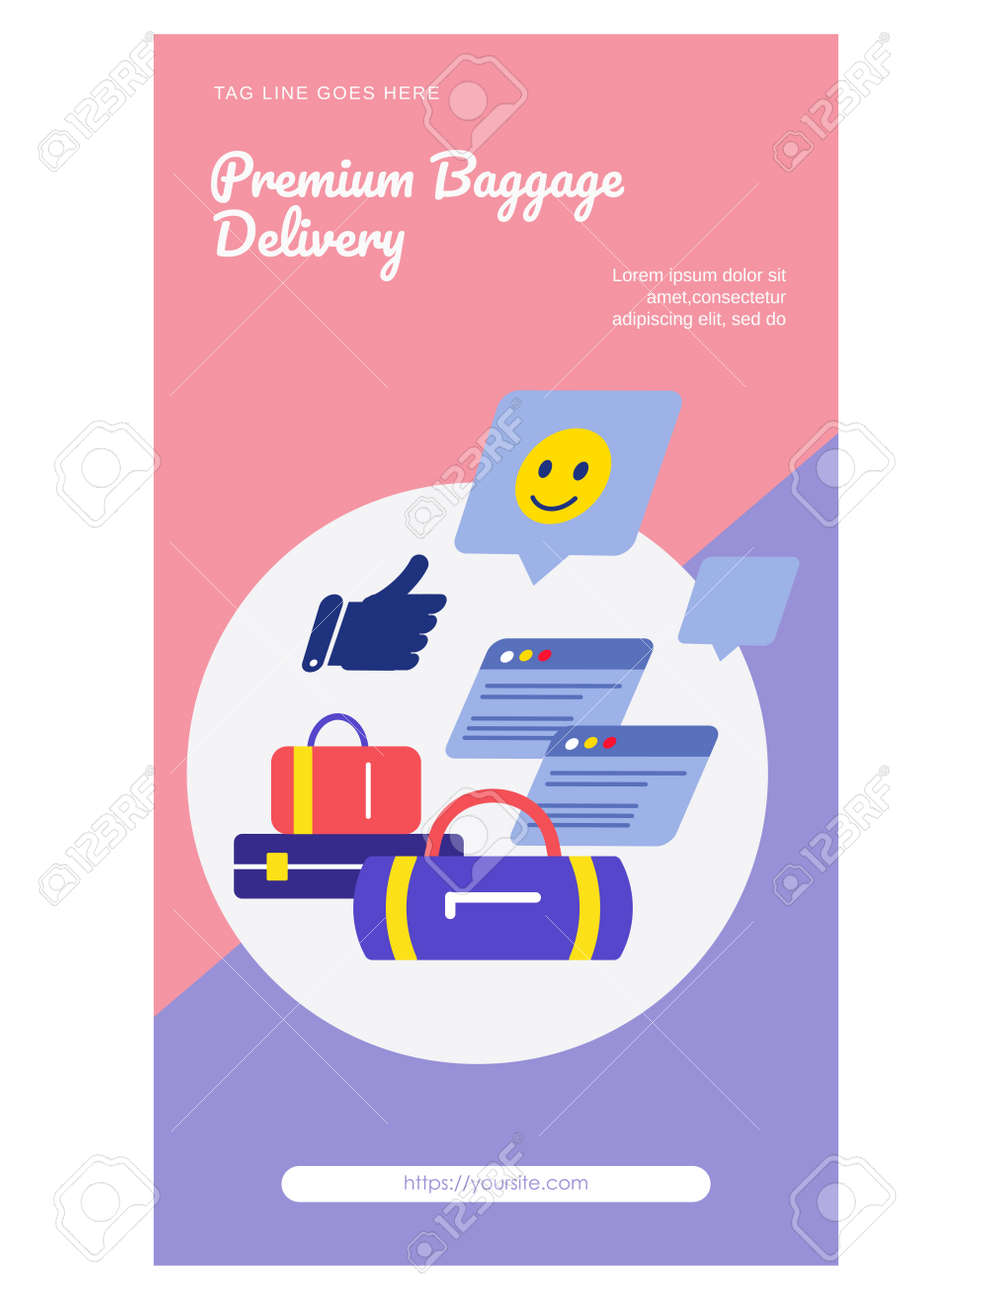 Fast worldwide delivery web page flat design - 168346695